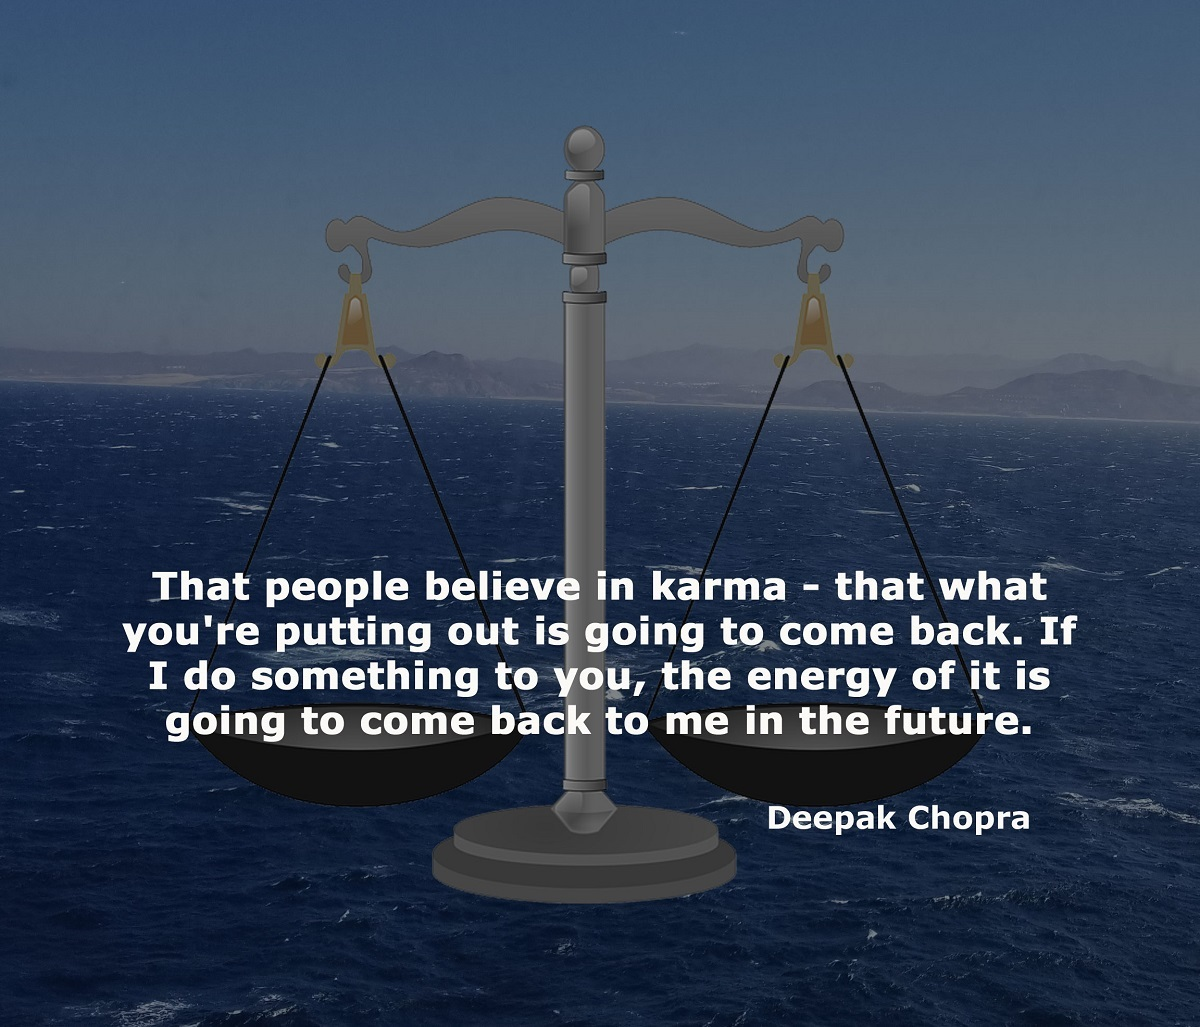 Deepak Chopra on Karma meme on Sea of Cortes photo